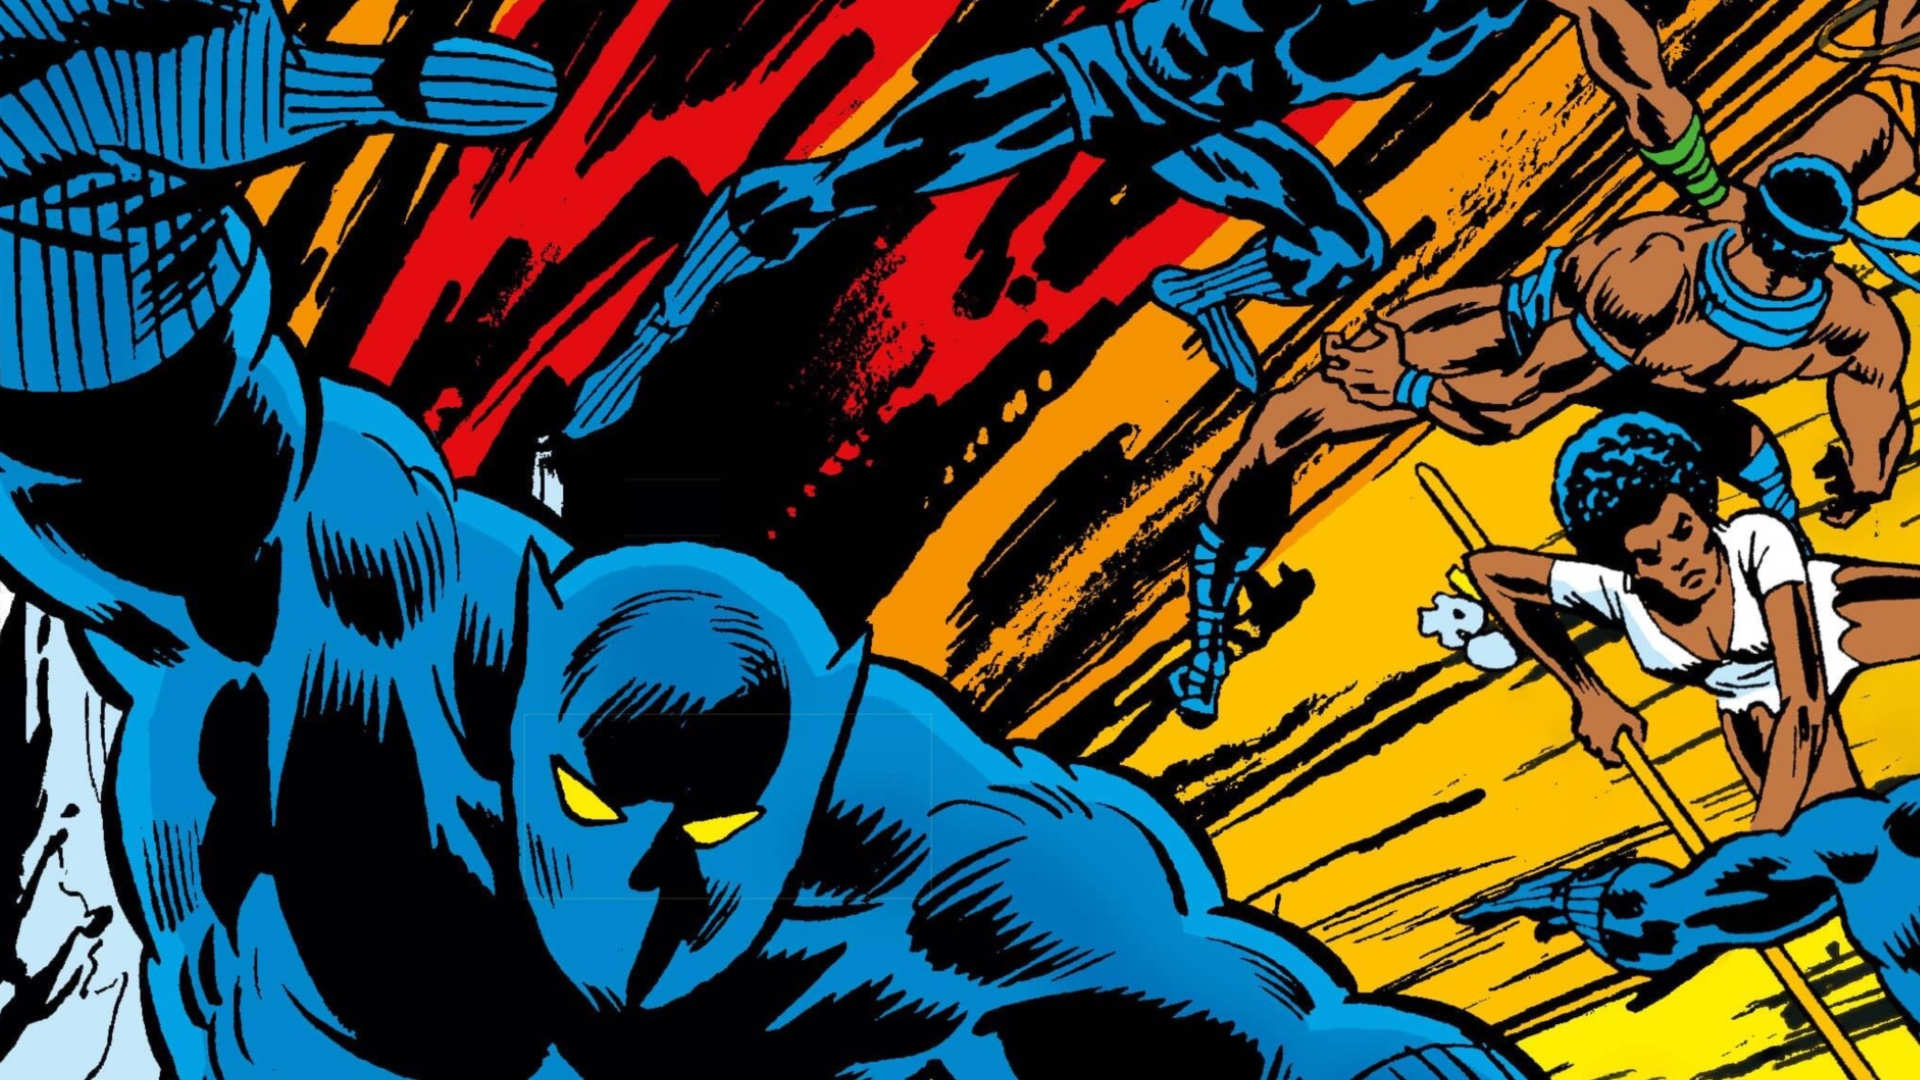 Captain America, Spider-Man, and Black Panther get special edition bookstore collections